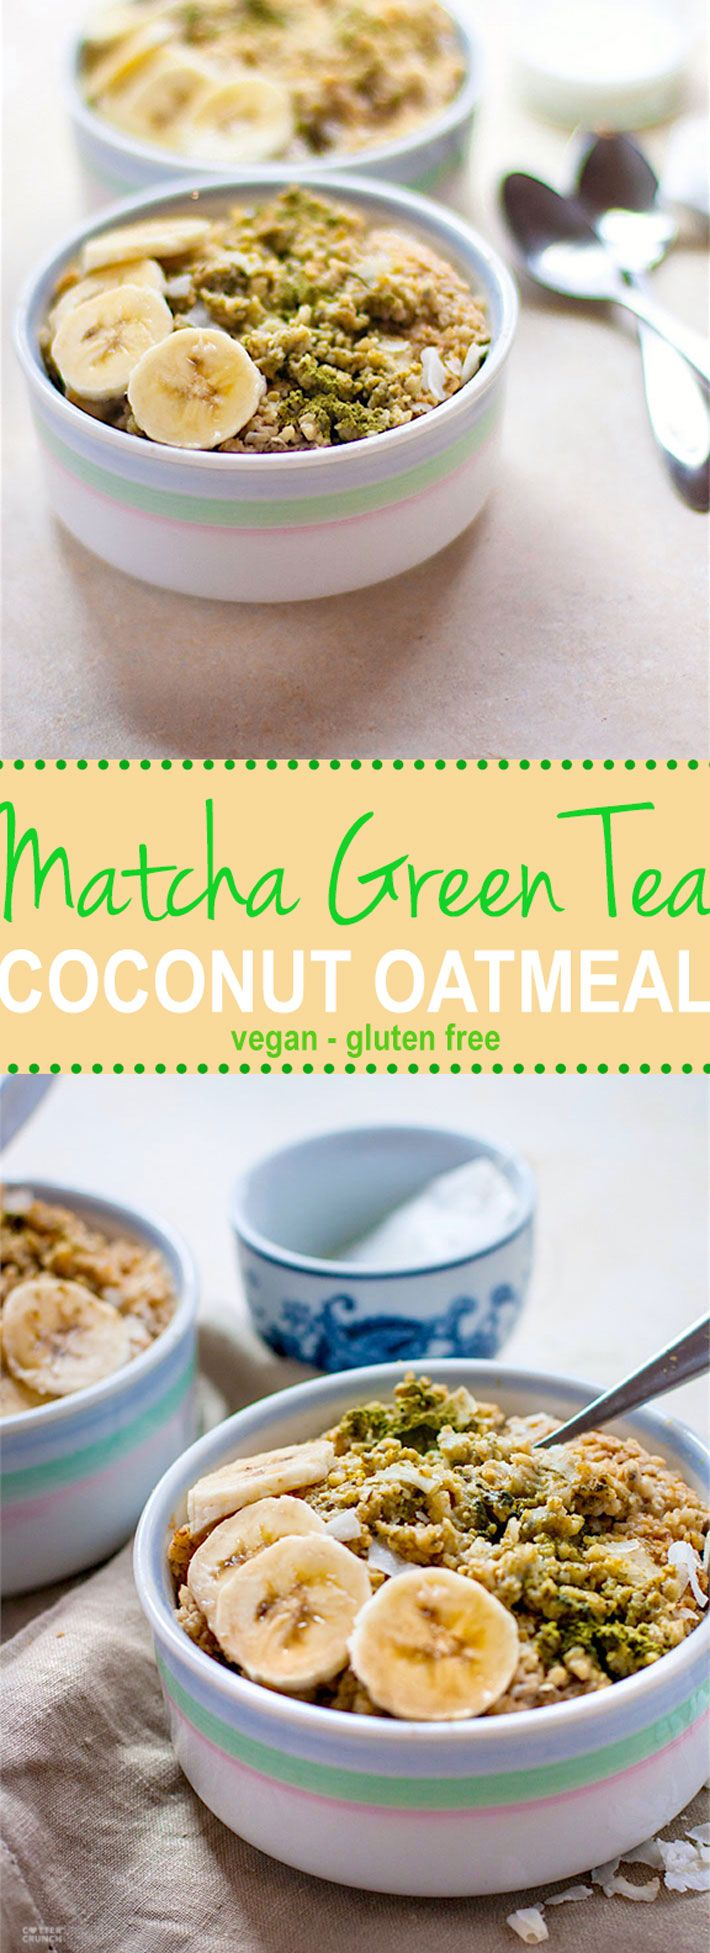 Energizing Coconut Matcha Green Tea Oatmeal! A gluten free and vegan friendly breakfast to POWER you through the day. Healthy matcha green tea paired with creamy coconut milk,  gluten free oatmeal, and coconut flakes to make one nourishing bowl of goodness. #udisglutenfree @cottercrunch